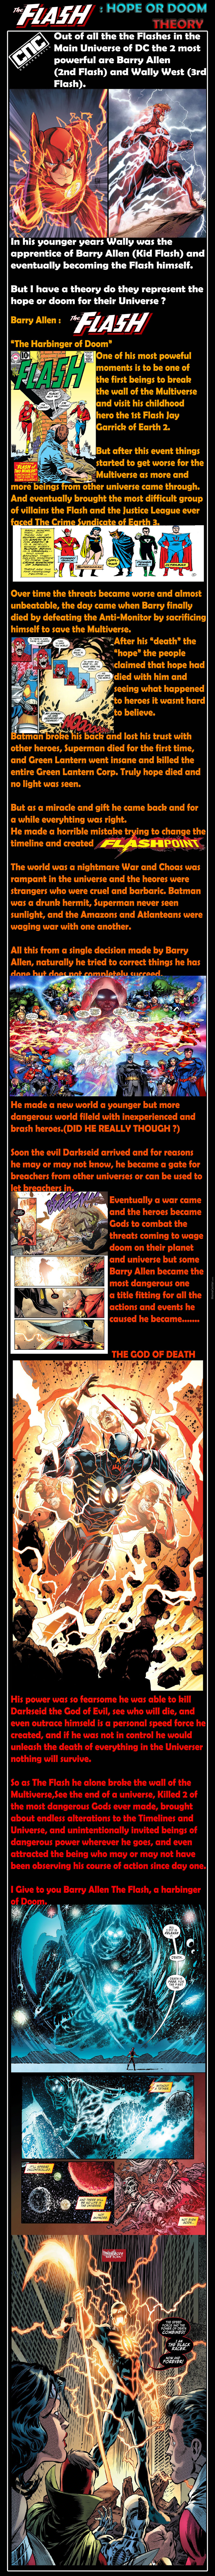 Comic Theory 2 : Barry Allen The Flash Of Doom